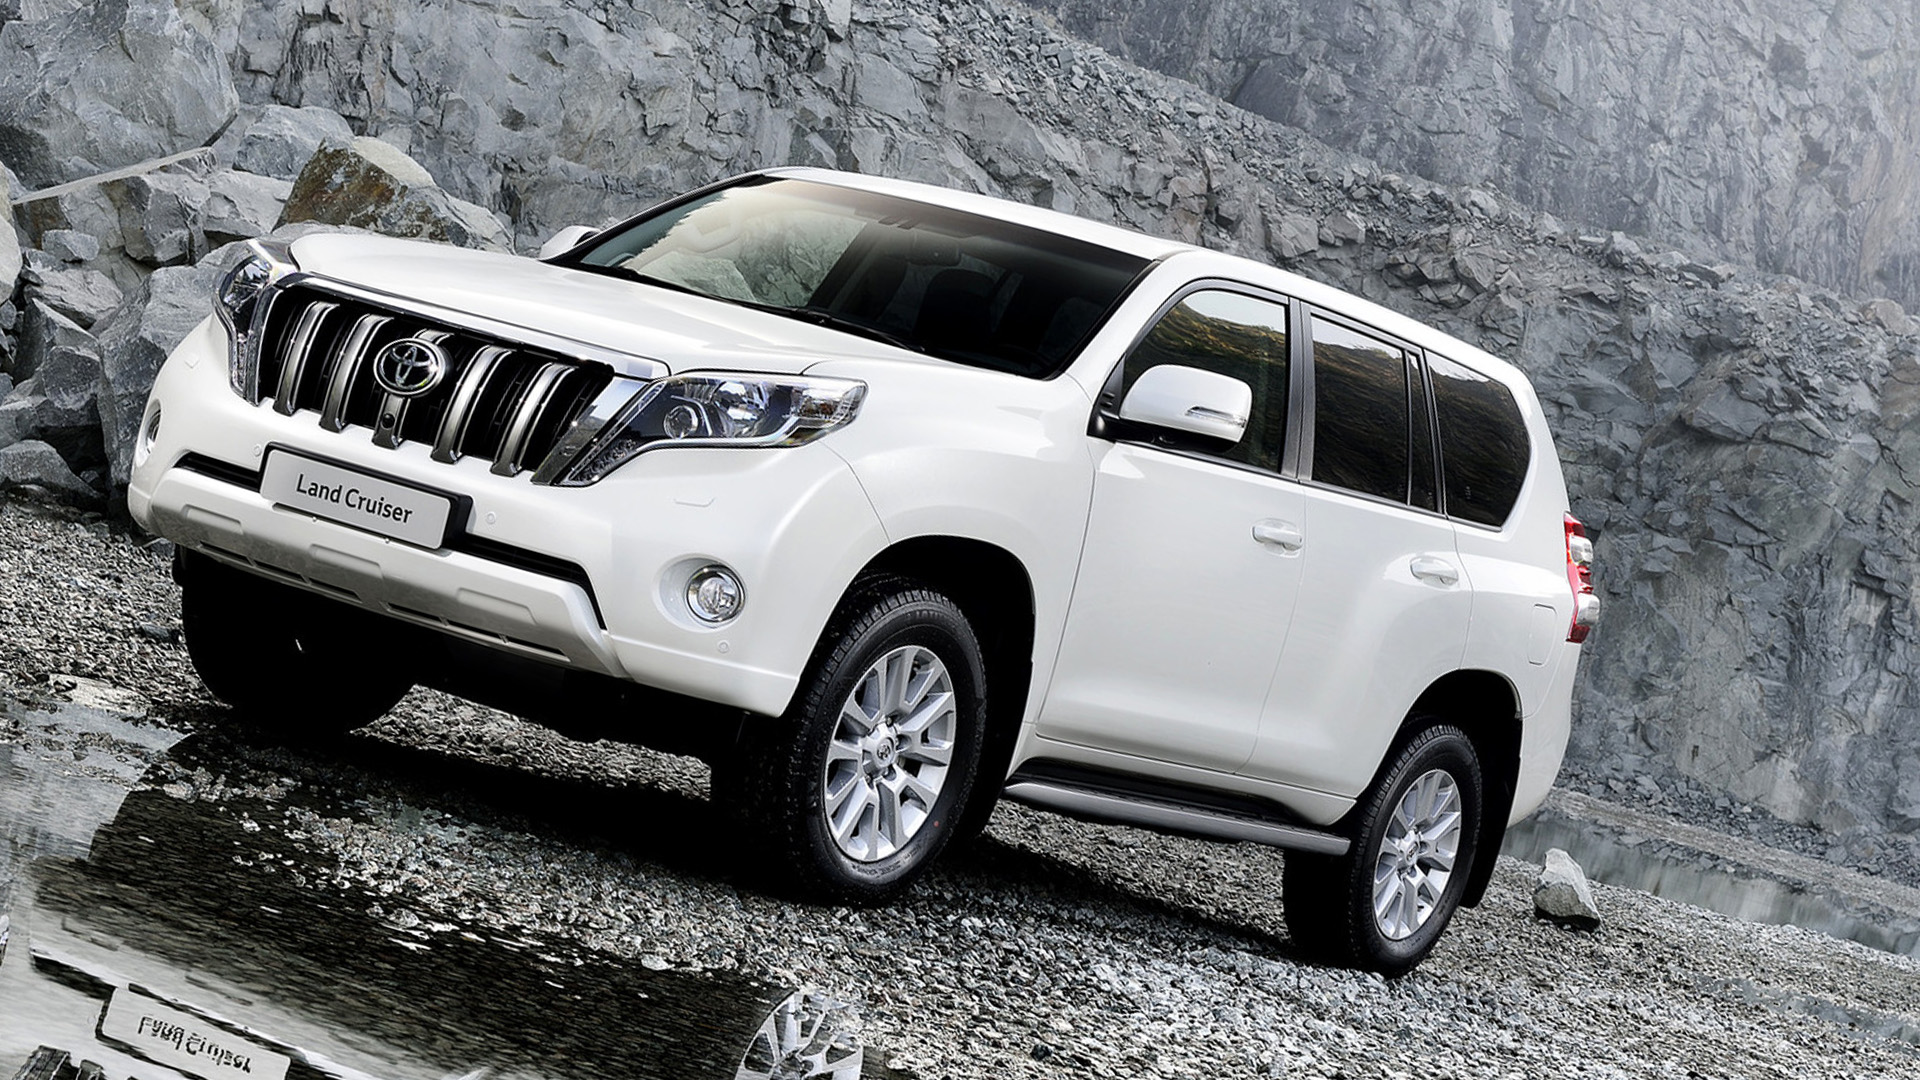 New 2016 Toyota Land Cruiser Exterior Picture